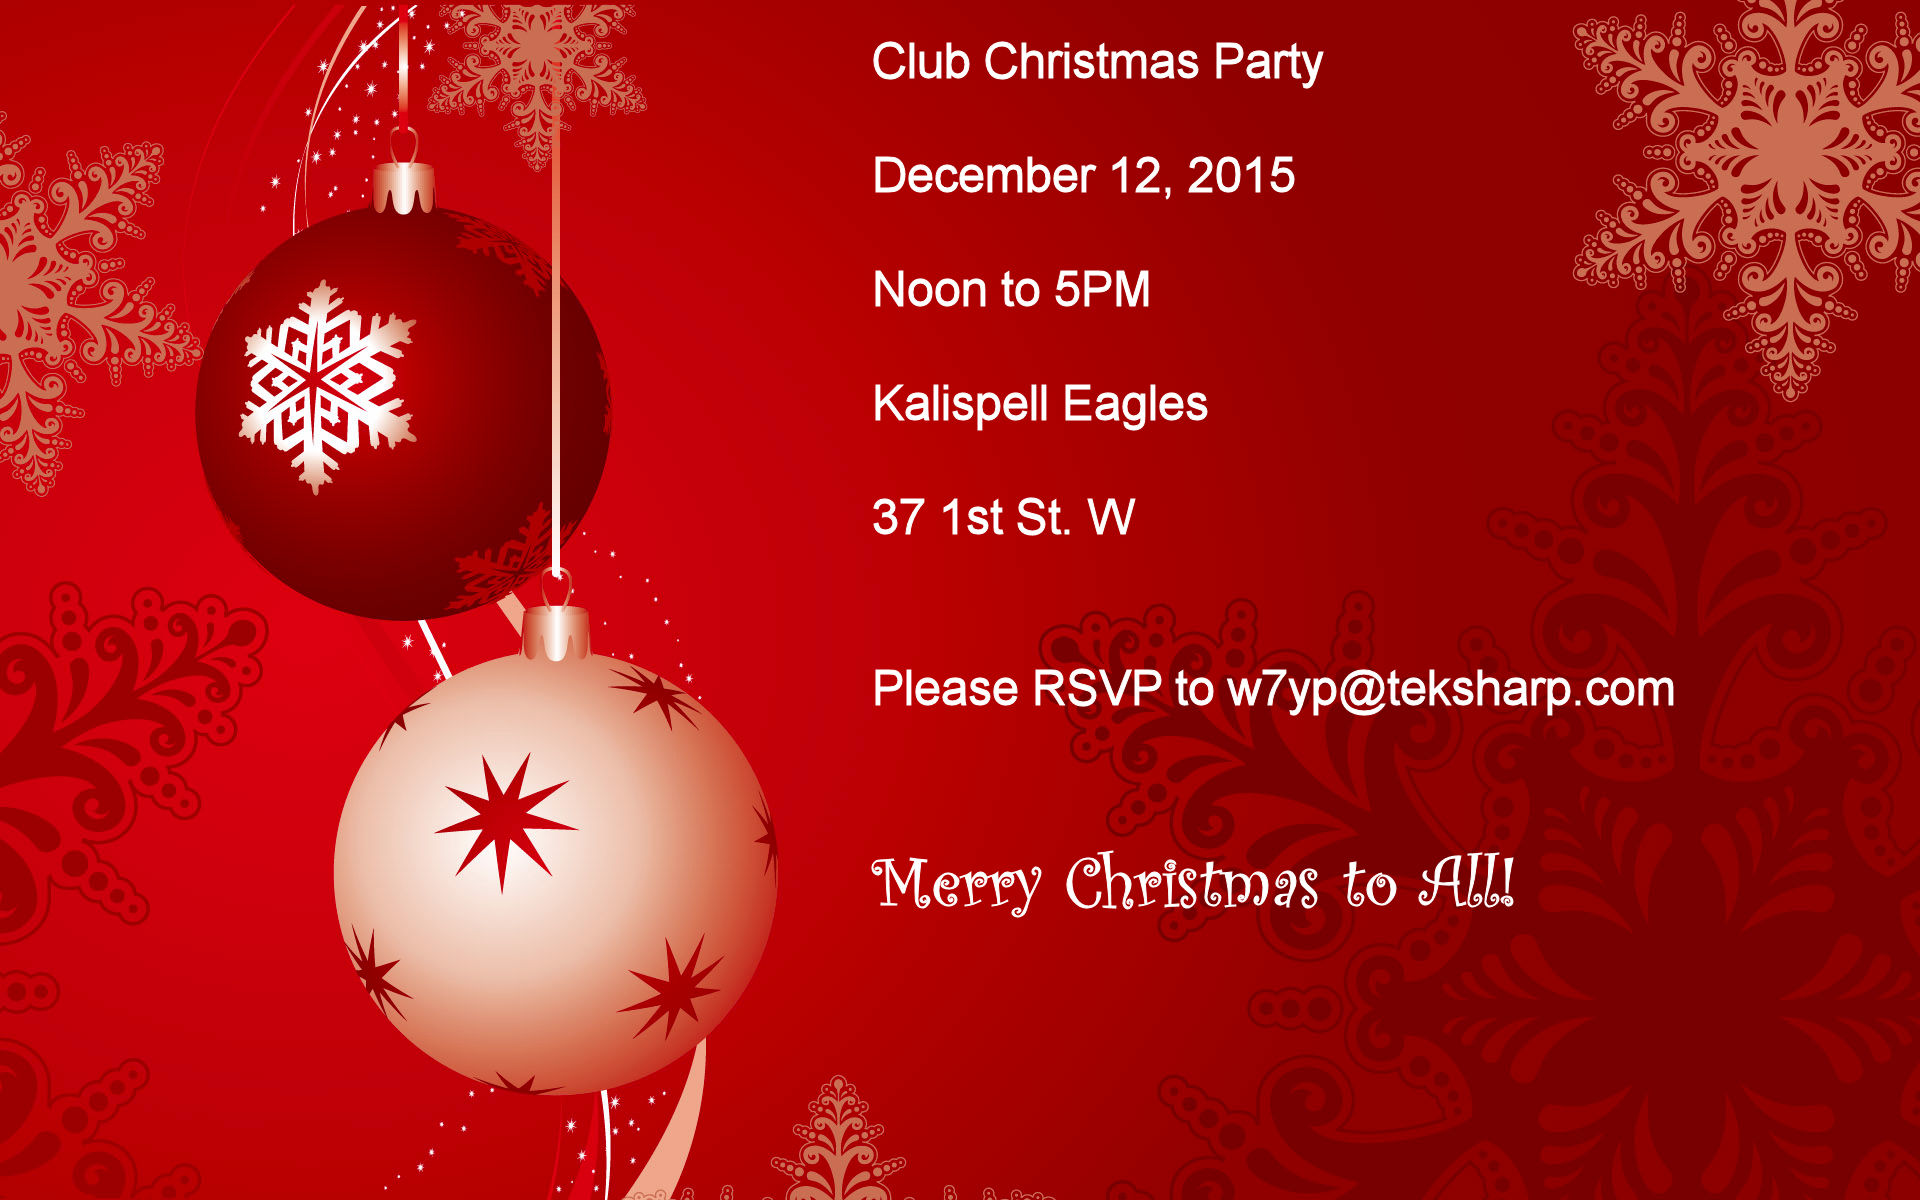 2015 Christmas Party Announcement